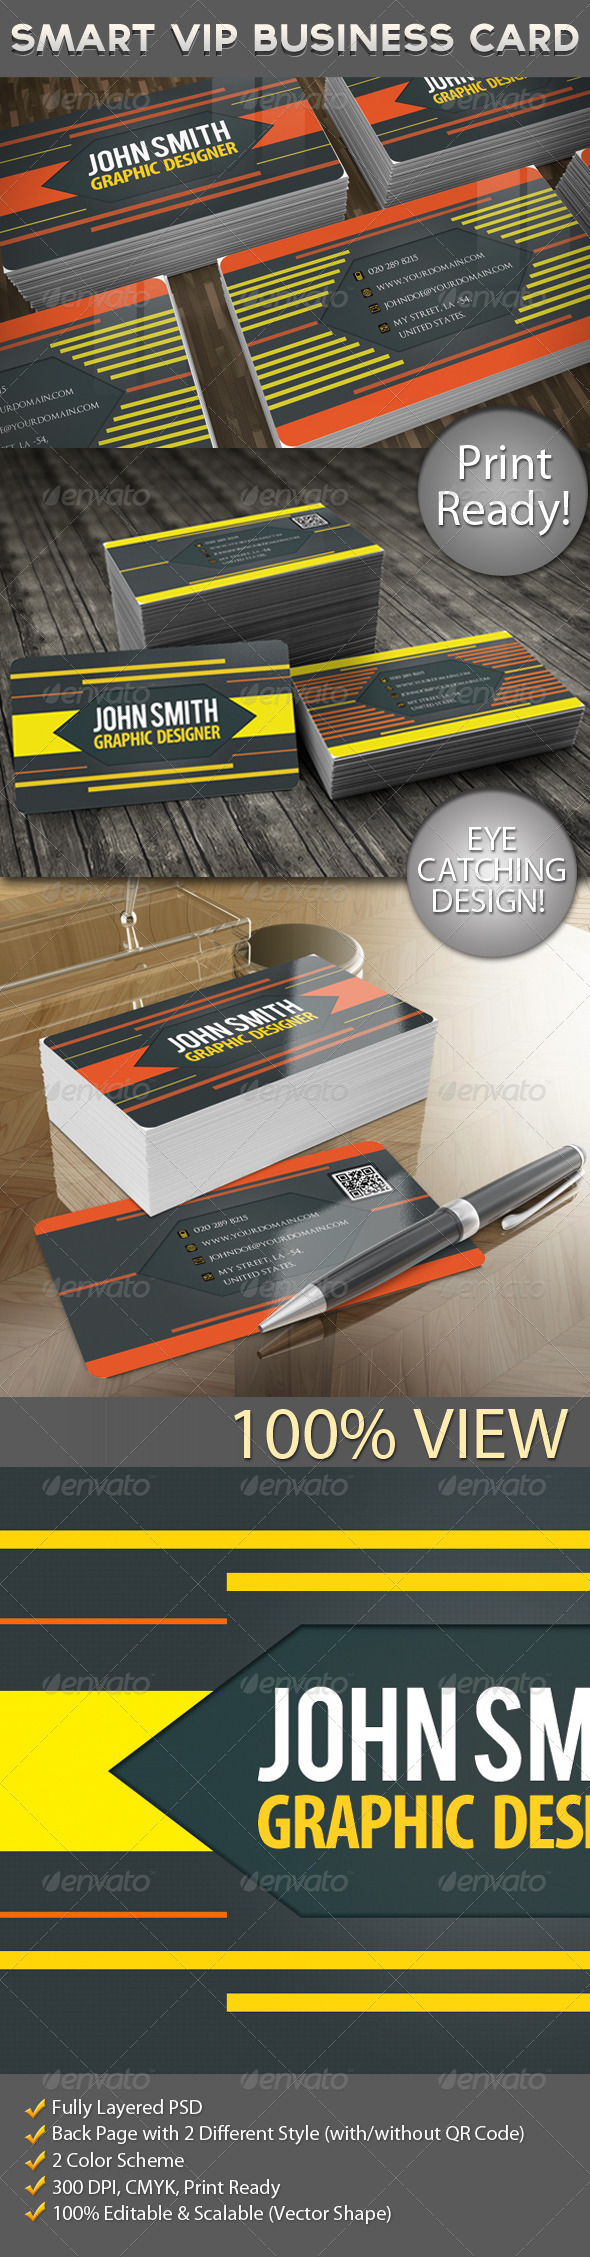 GraphicRiver Smart VIP Business Cards 5496419